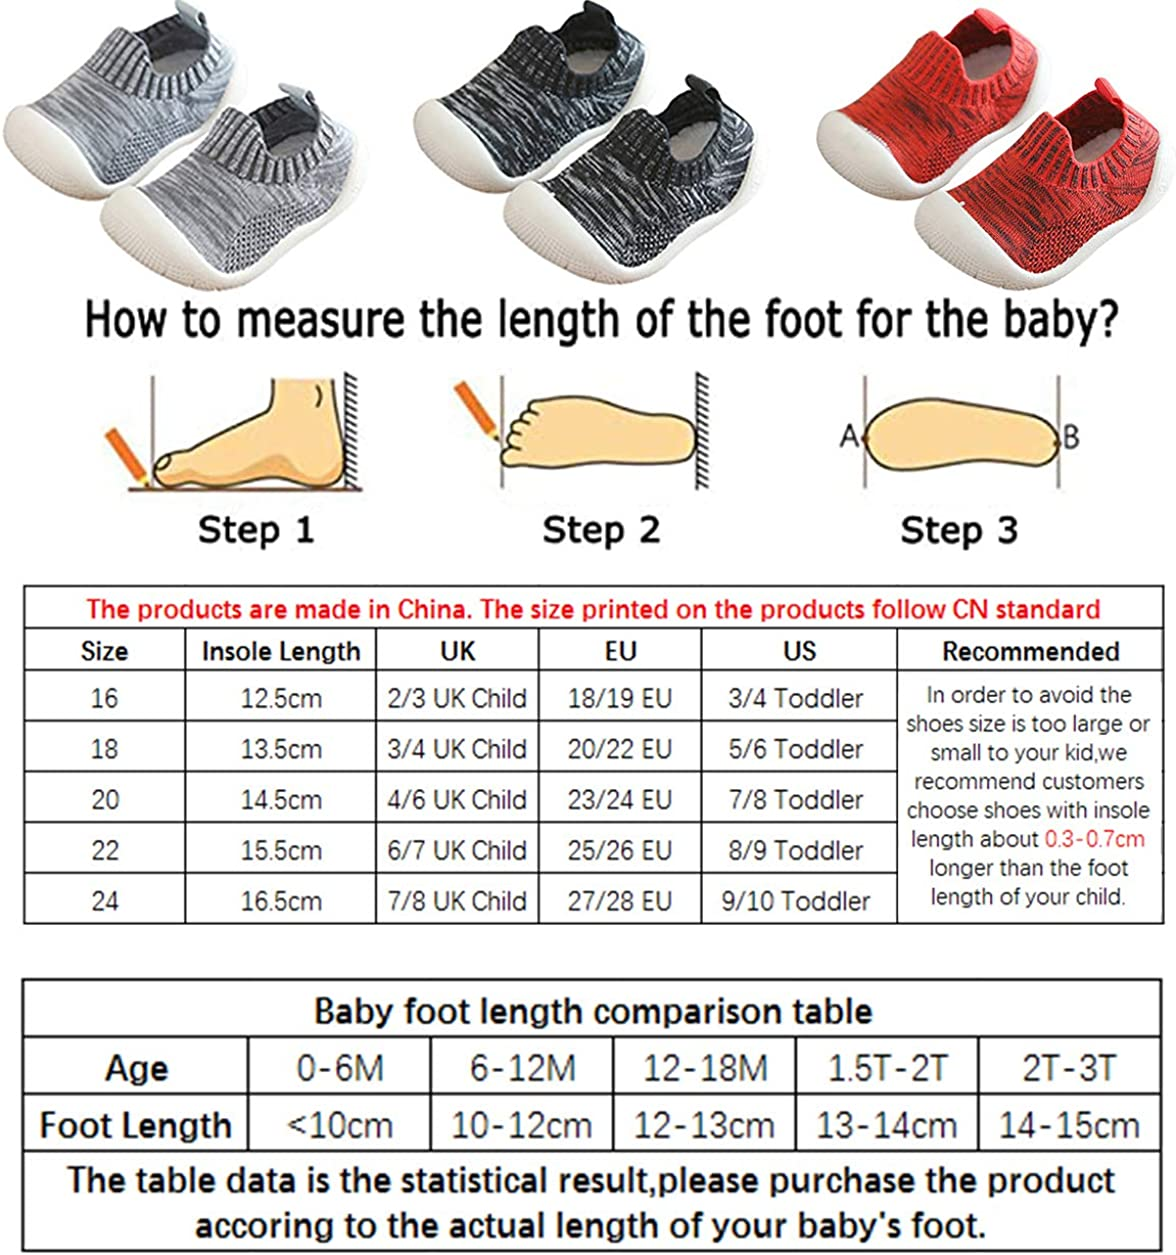 DEBAIJIA Toddler Shoes 1-4T Baby First-Walking Kid Shoes Mesh Breathable Trainers Soft Sole Non Slip Lightweight TPR Material Slip-on Sneaker